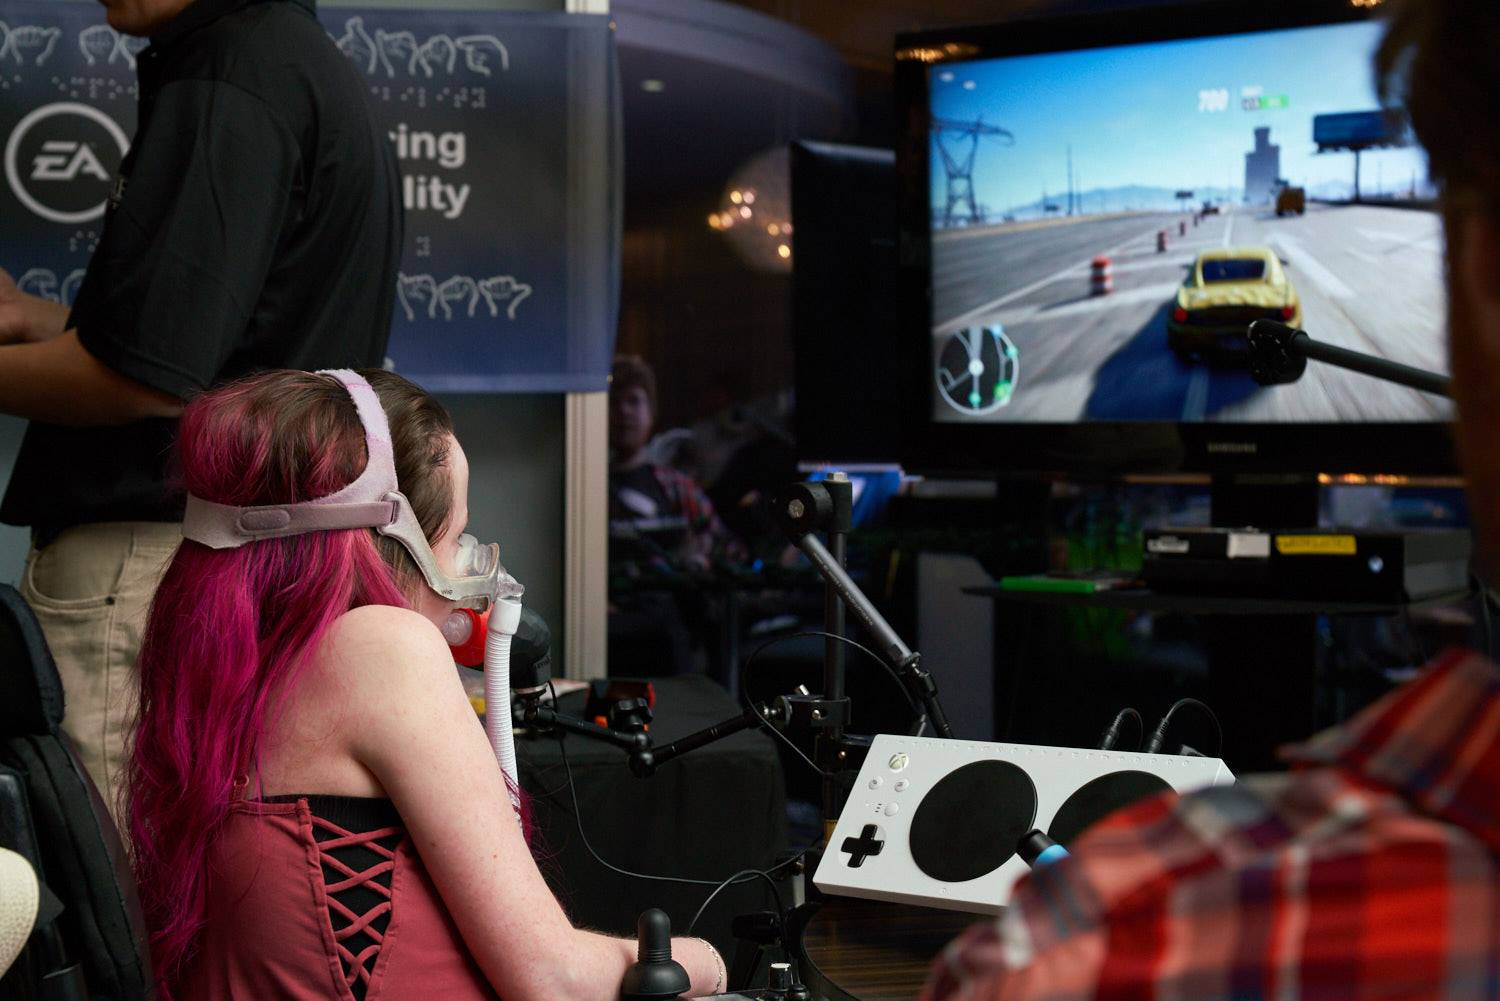 Kaileen plays Need for Speed witht he help of the Xbox Adaptive Controller, our LipSync, and custom buttons attached to her chair